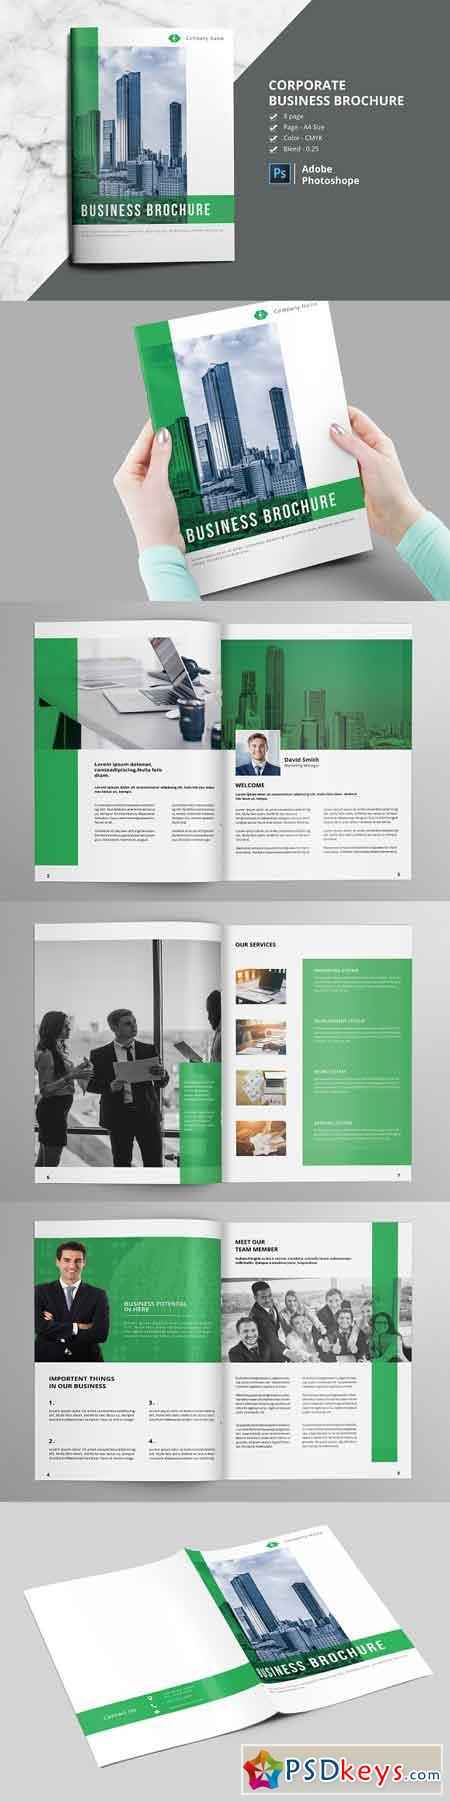 Business Brochure V804 2372279